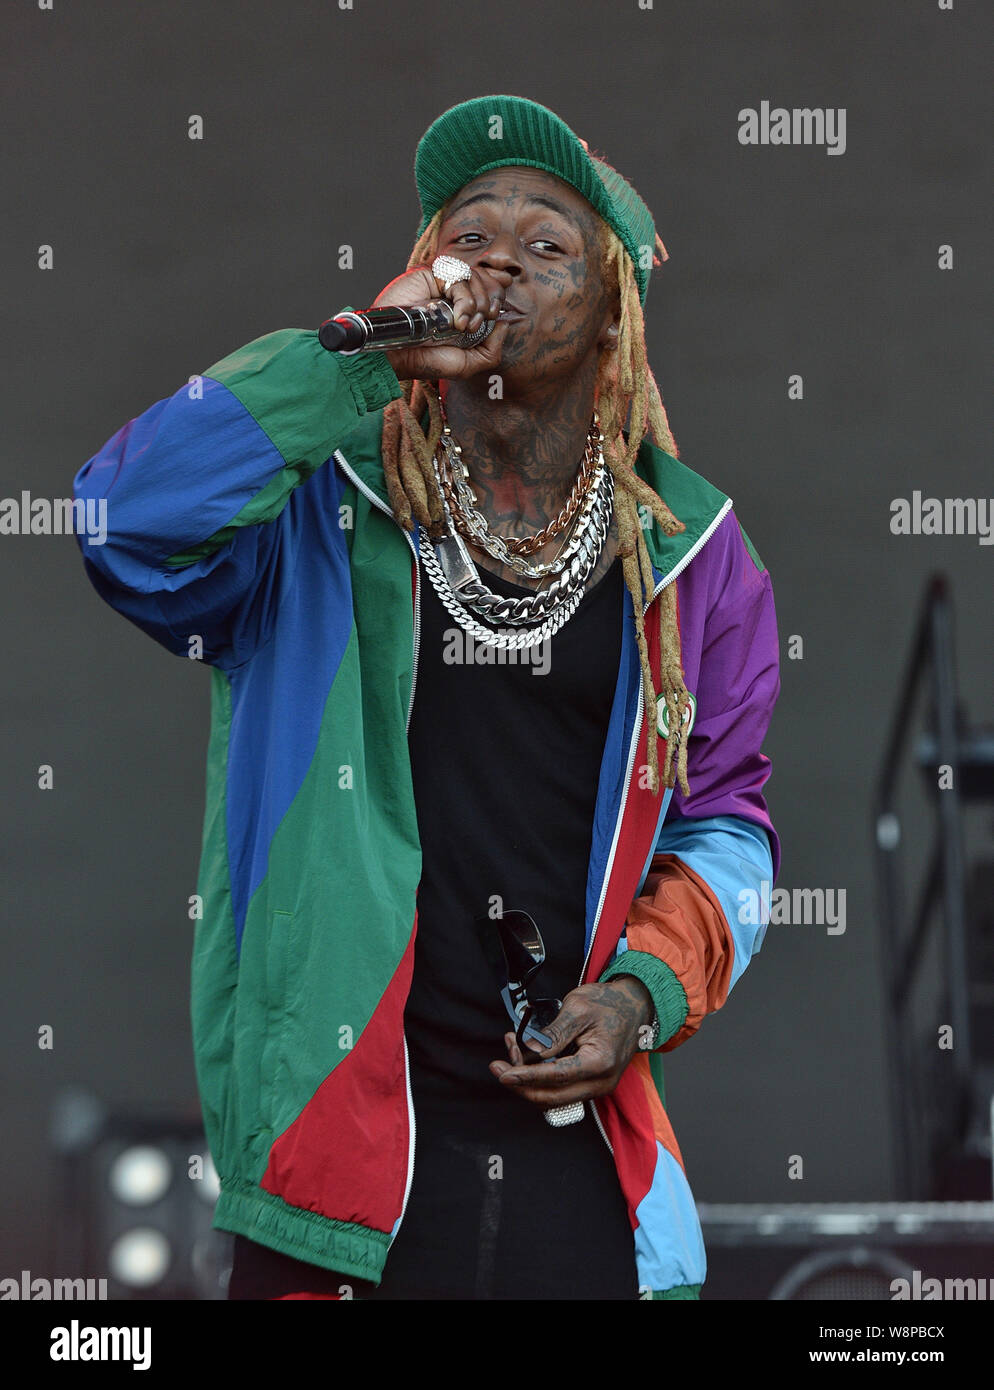 SanFrancisco, USA  09th August, 2019  Lil Wayne performs